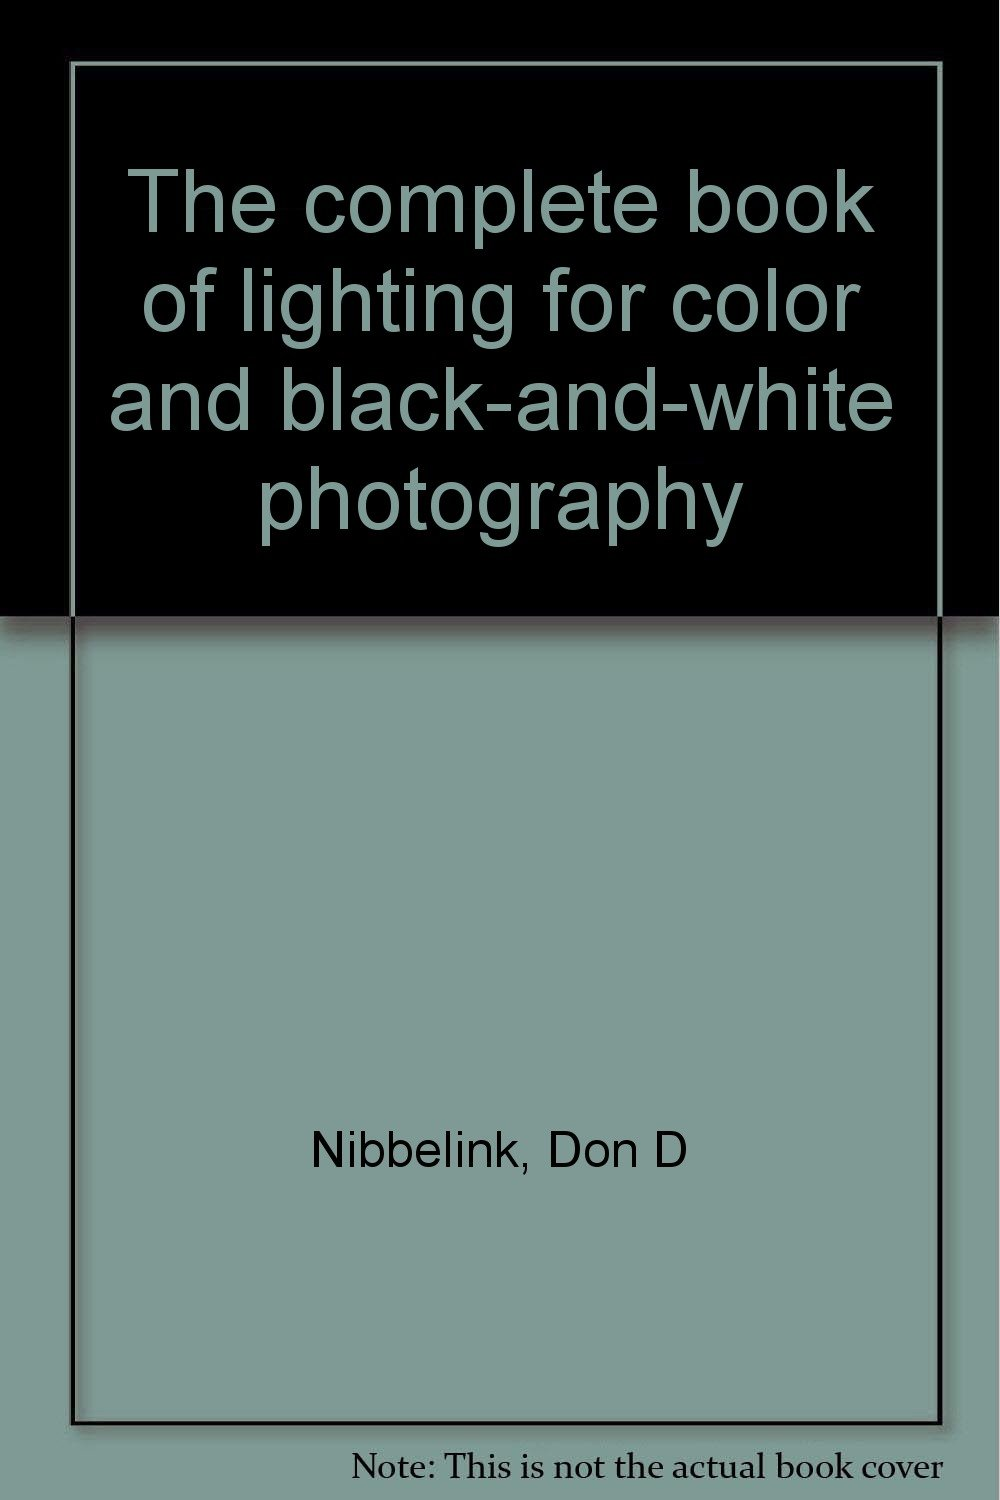 The complete book of lighting for color and black-and-white photography